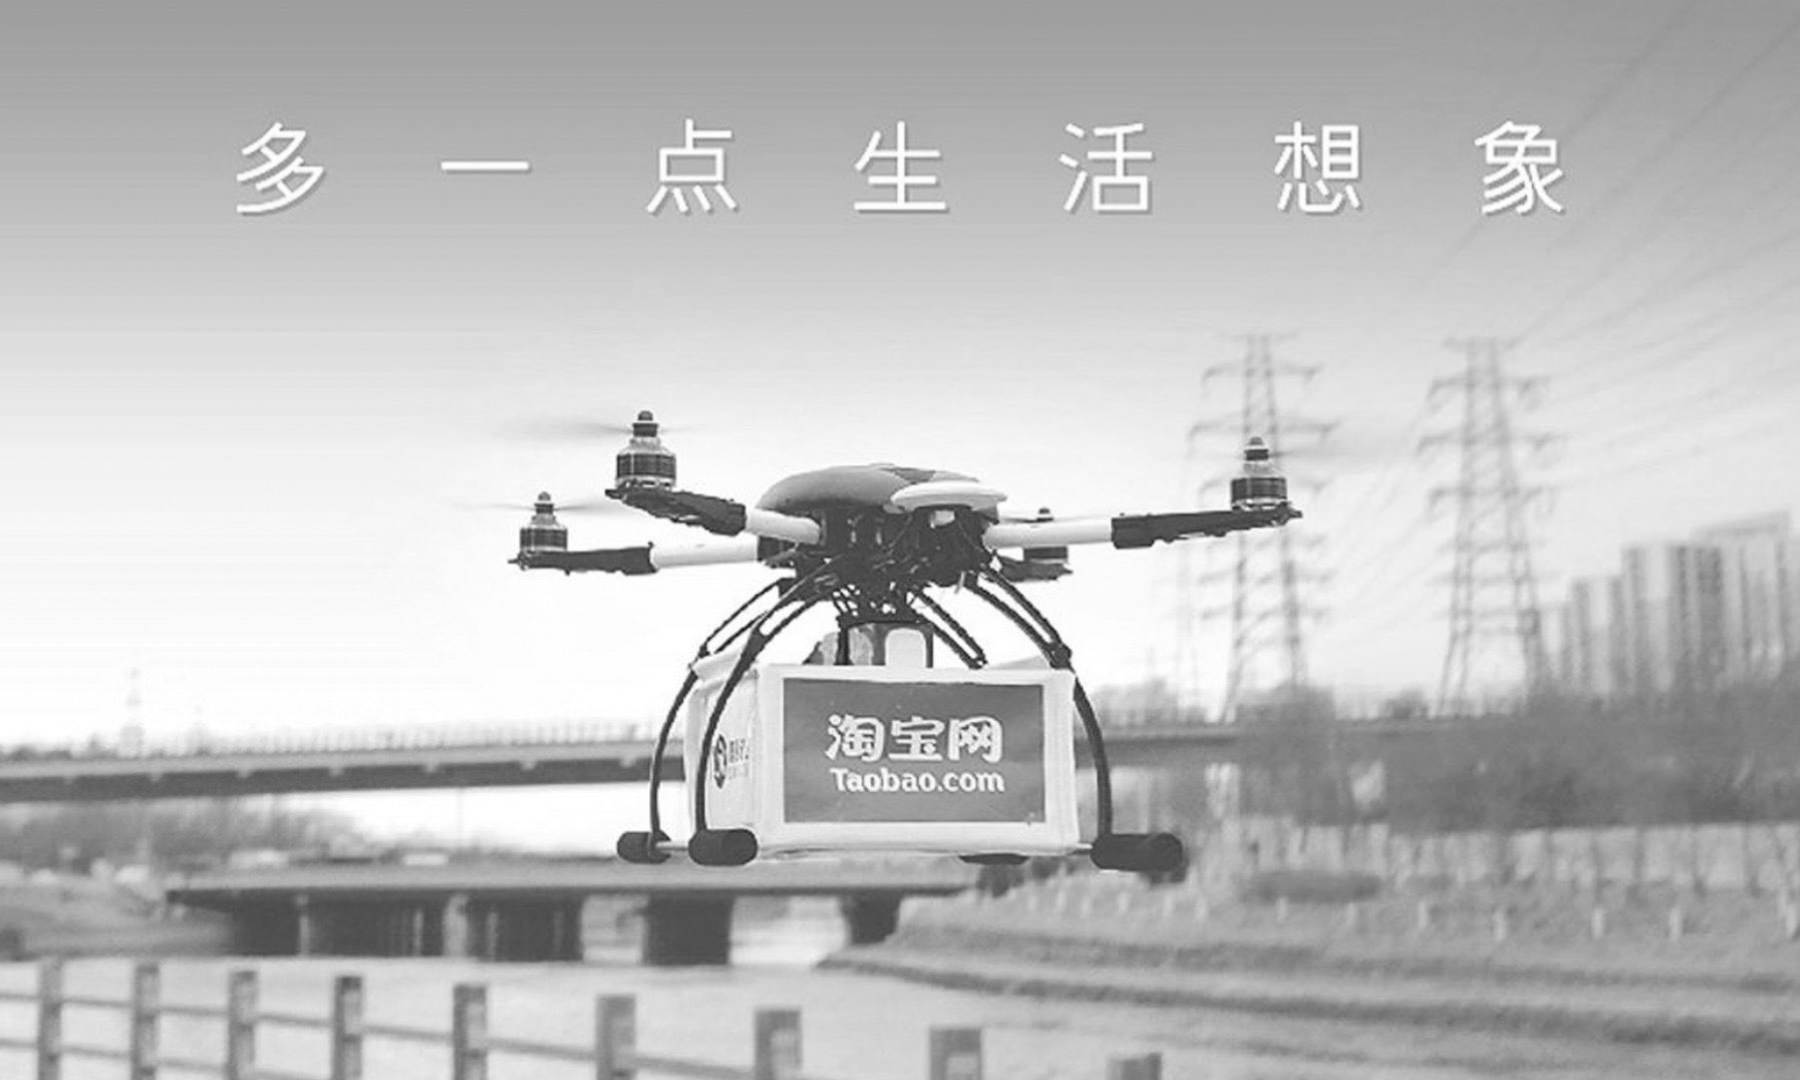 Delivering Tea By Drones